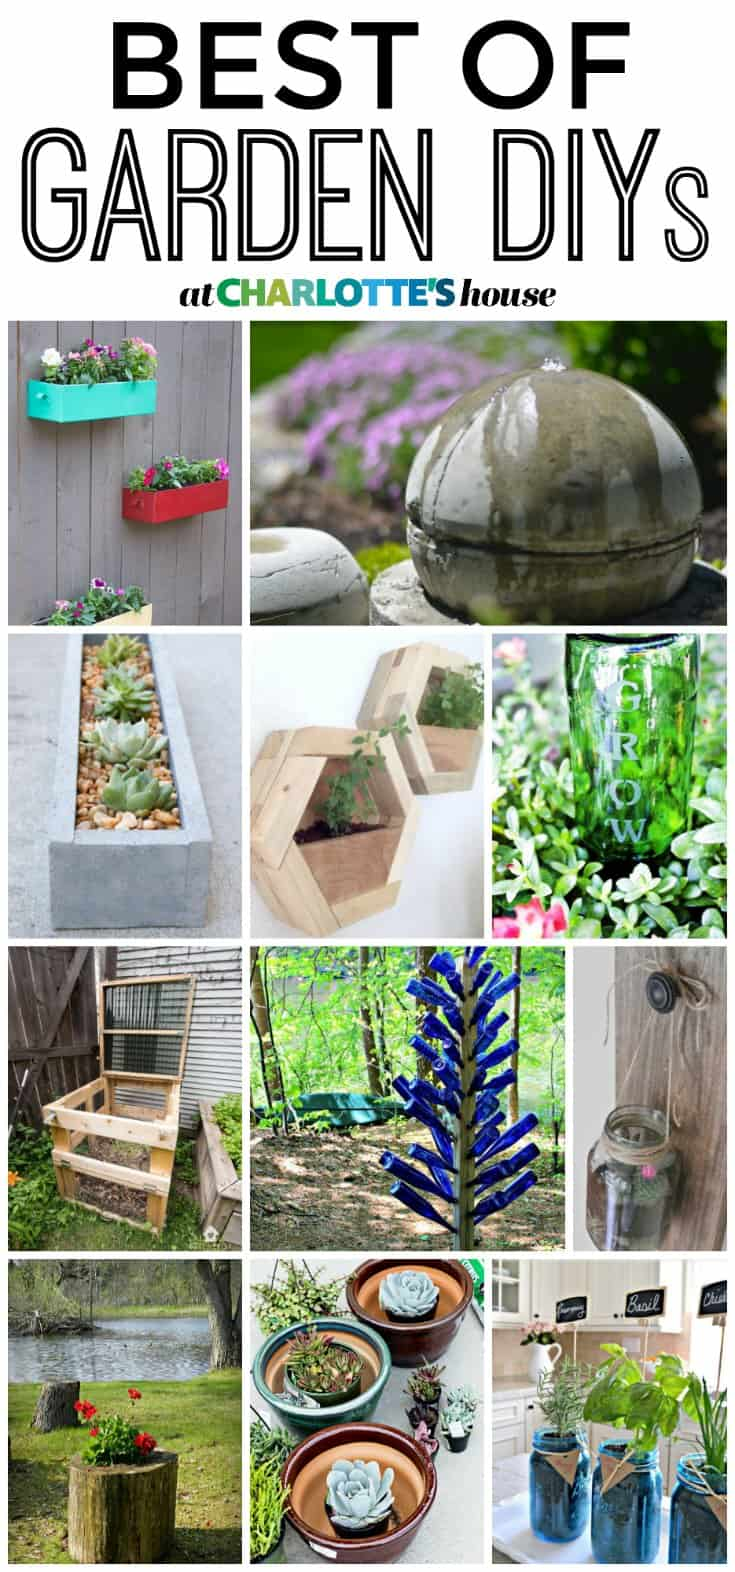 These ideas for garden DIYs are the best! Can't decide which one to start with!